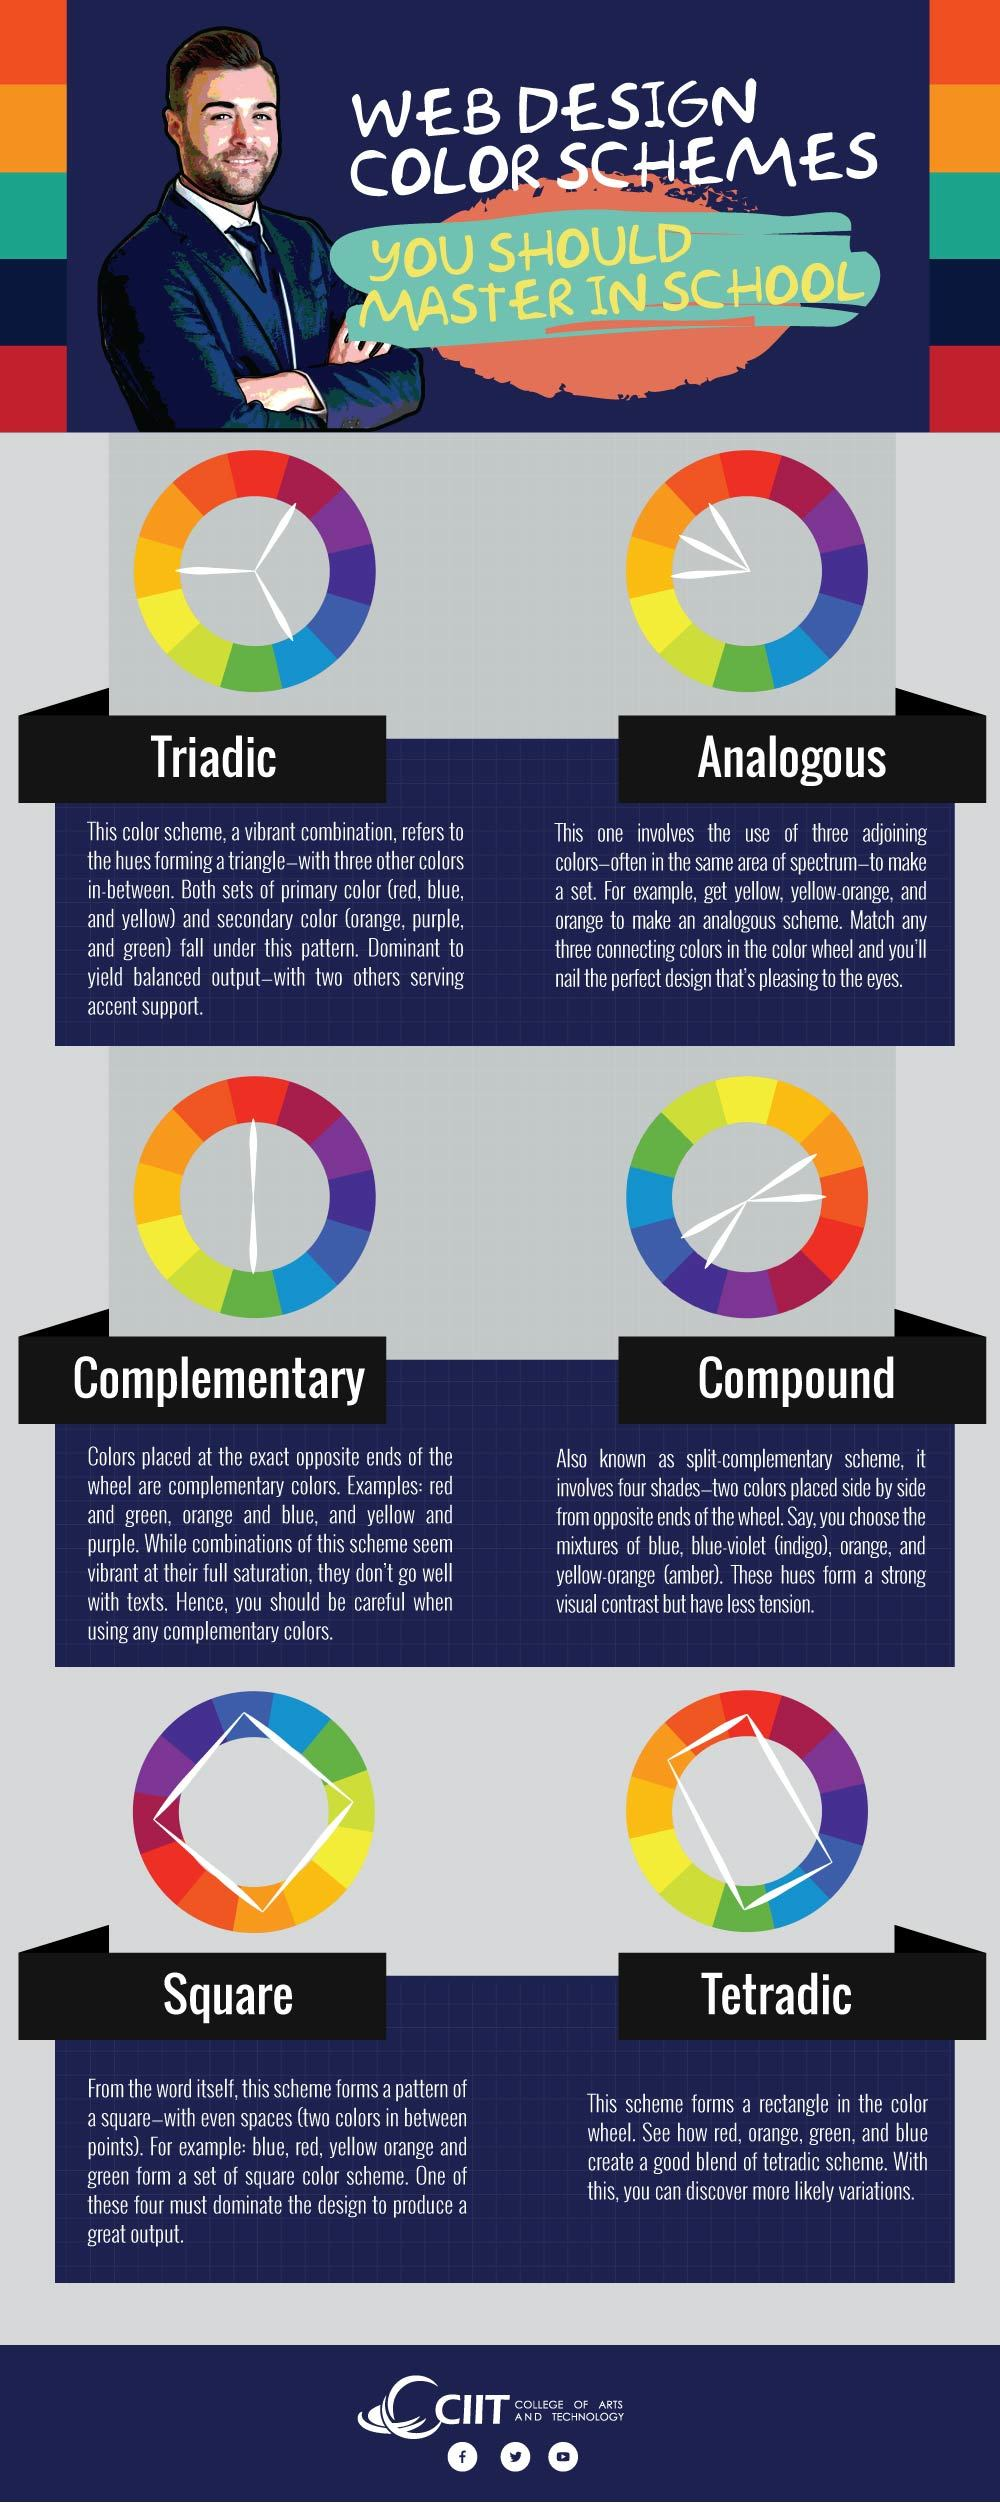 Web Design Color Schemes You Should Master in School